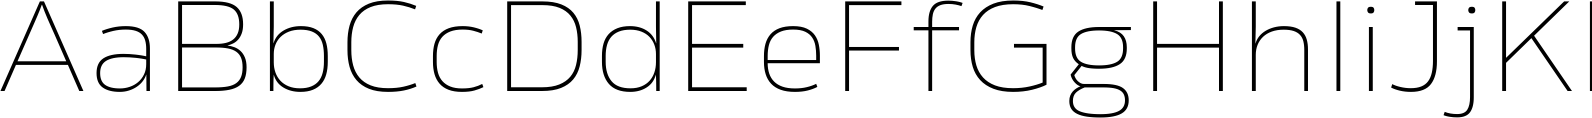 Rleud Extended Thin Font